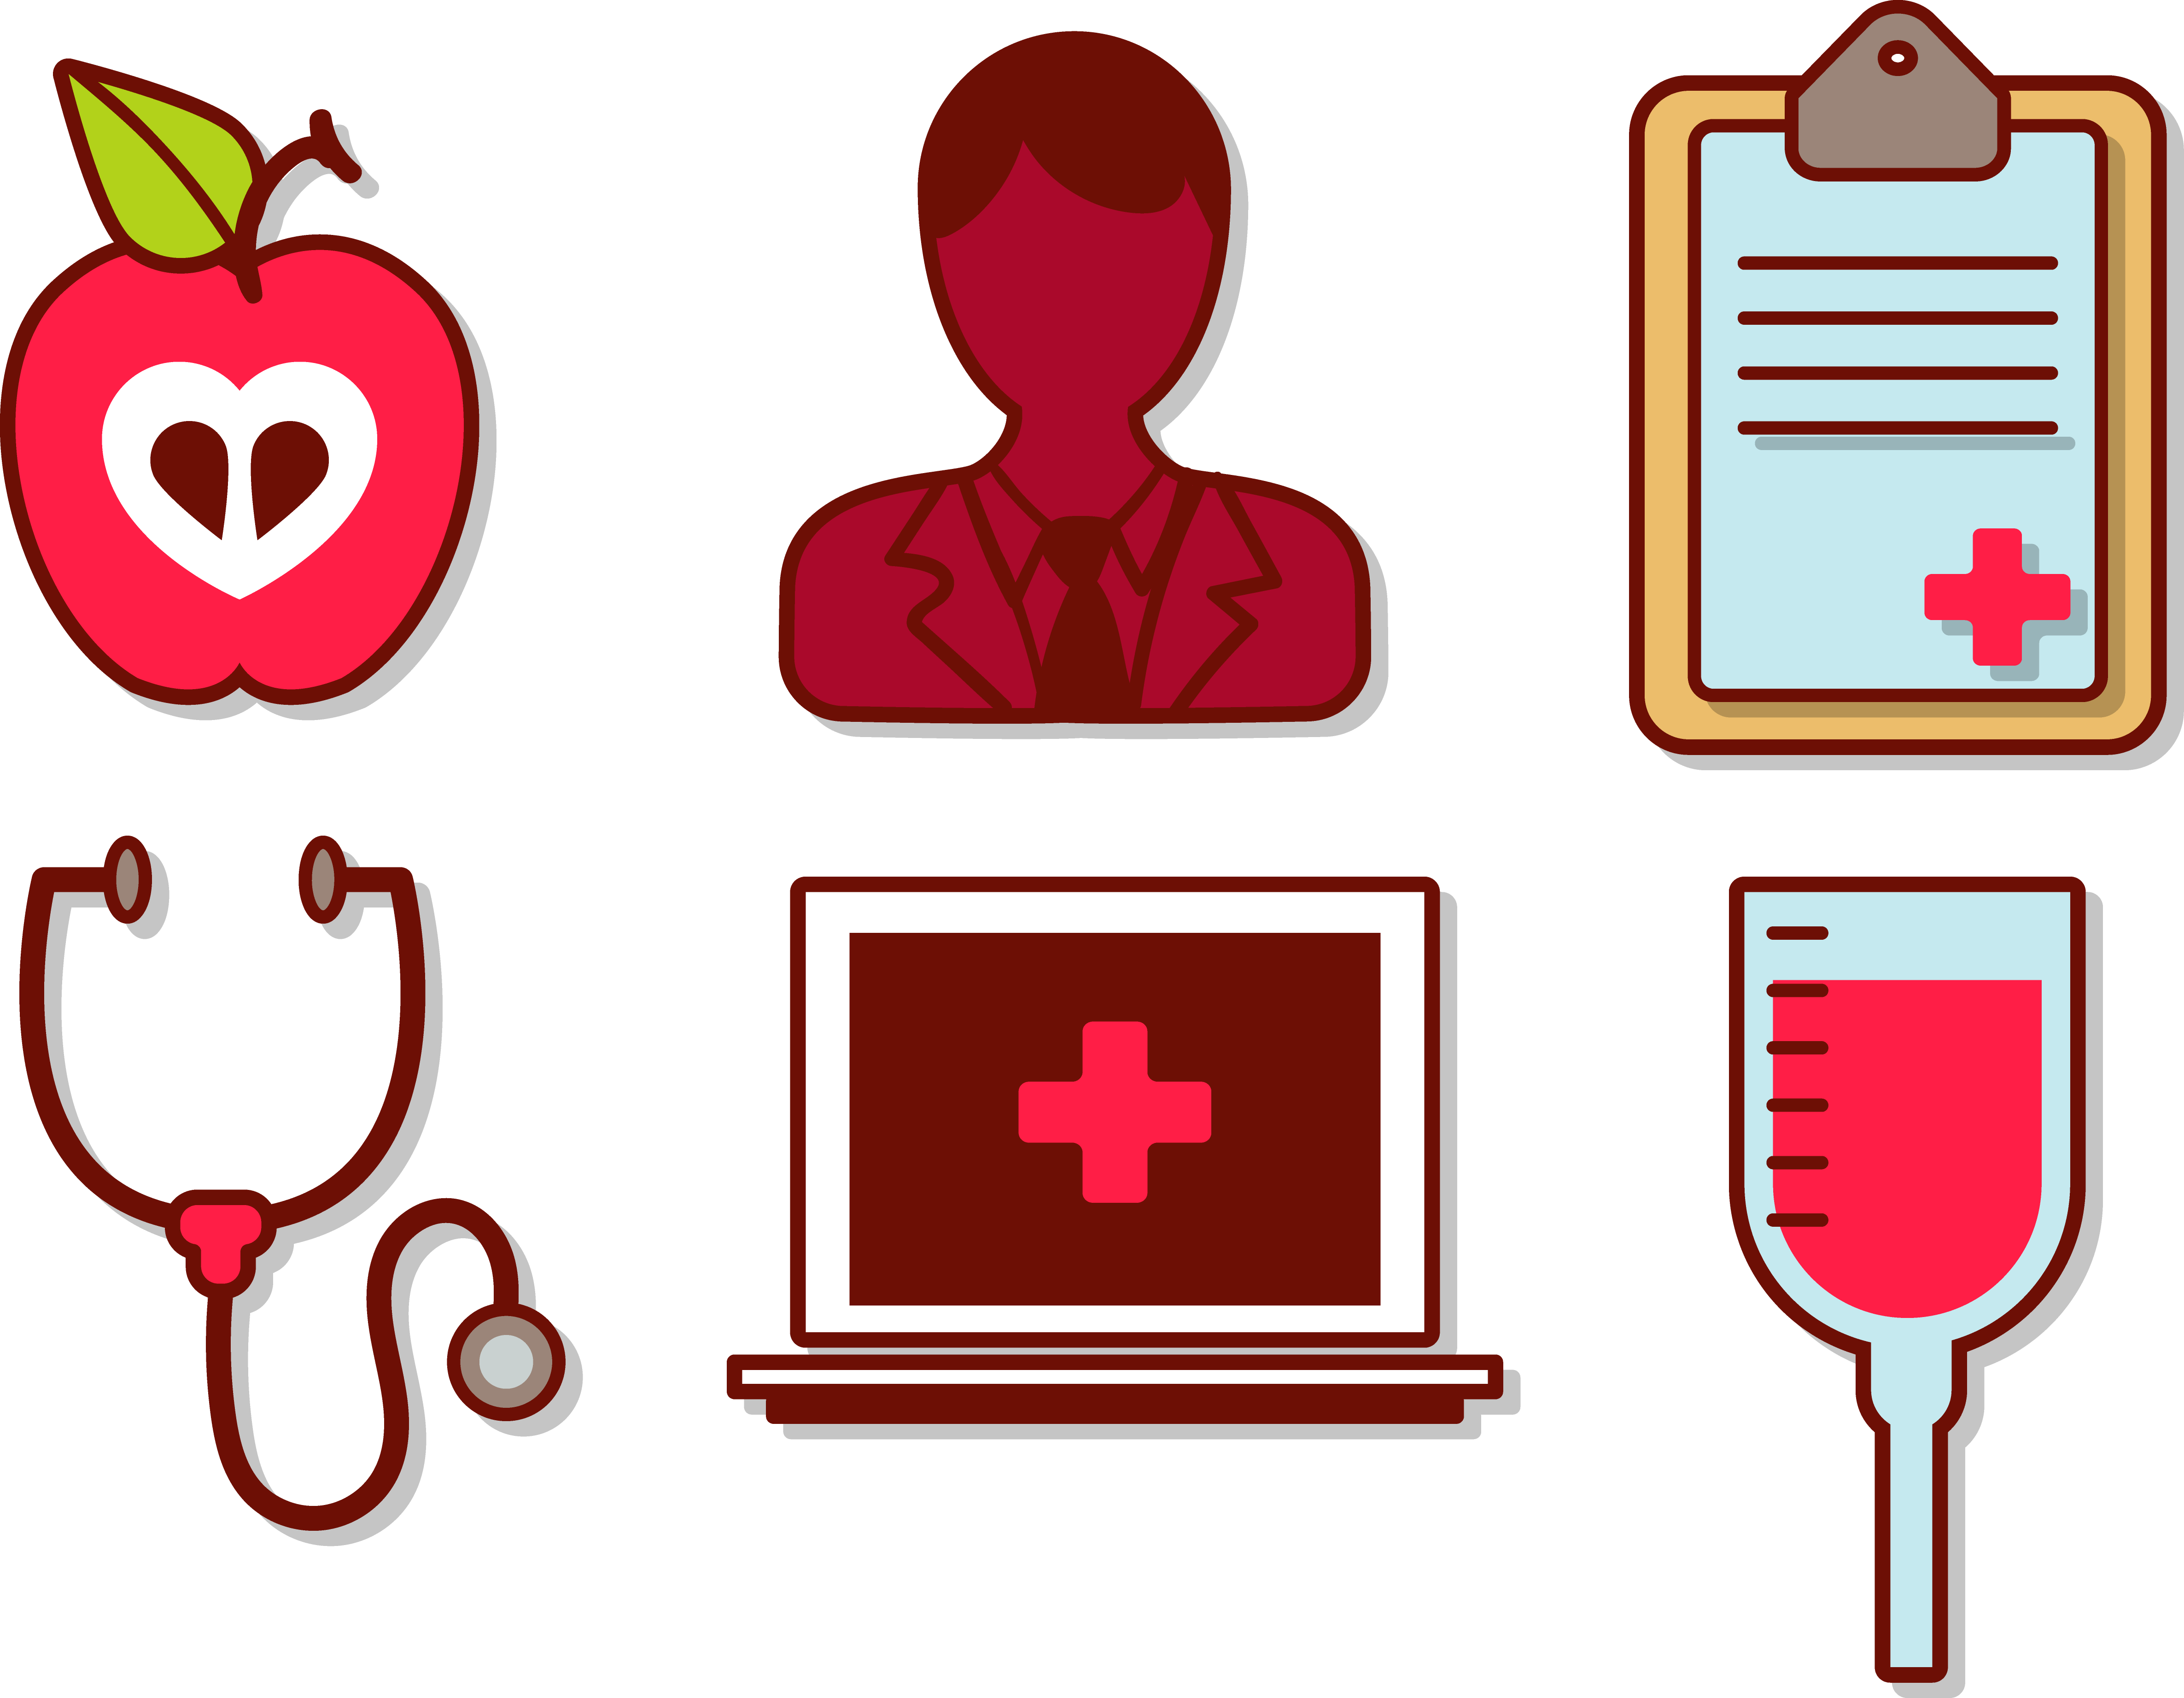 Physician care medicine hospital. Professional clipart health professional